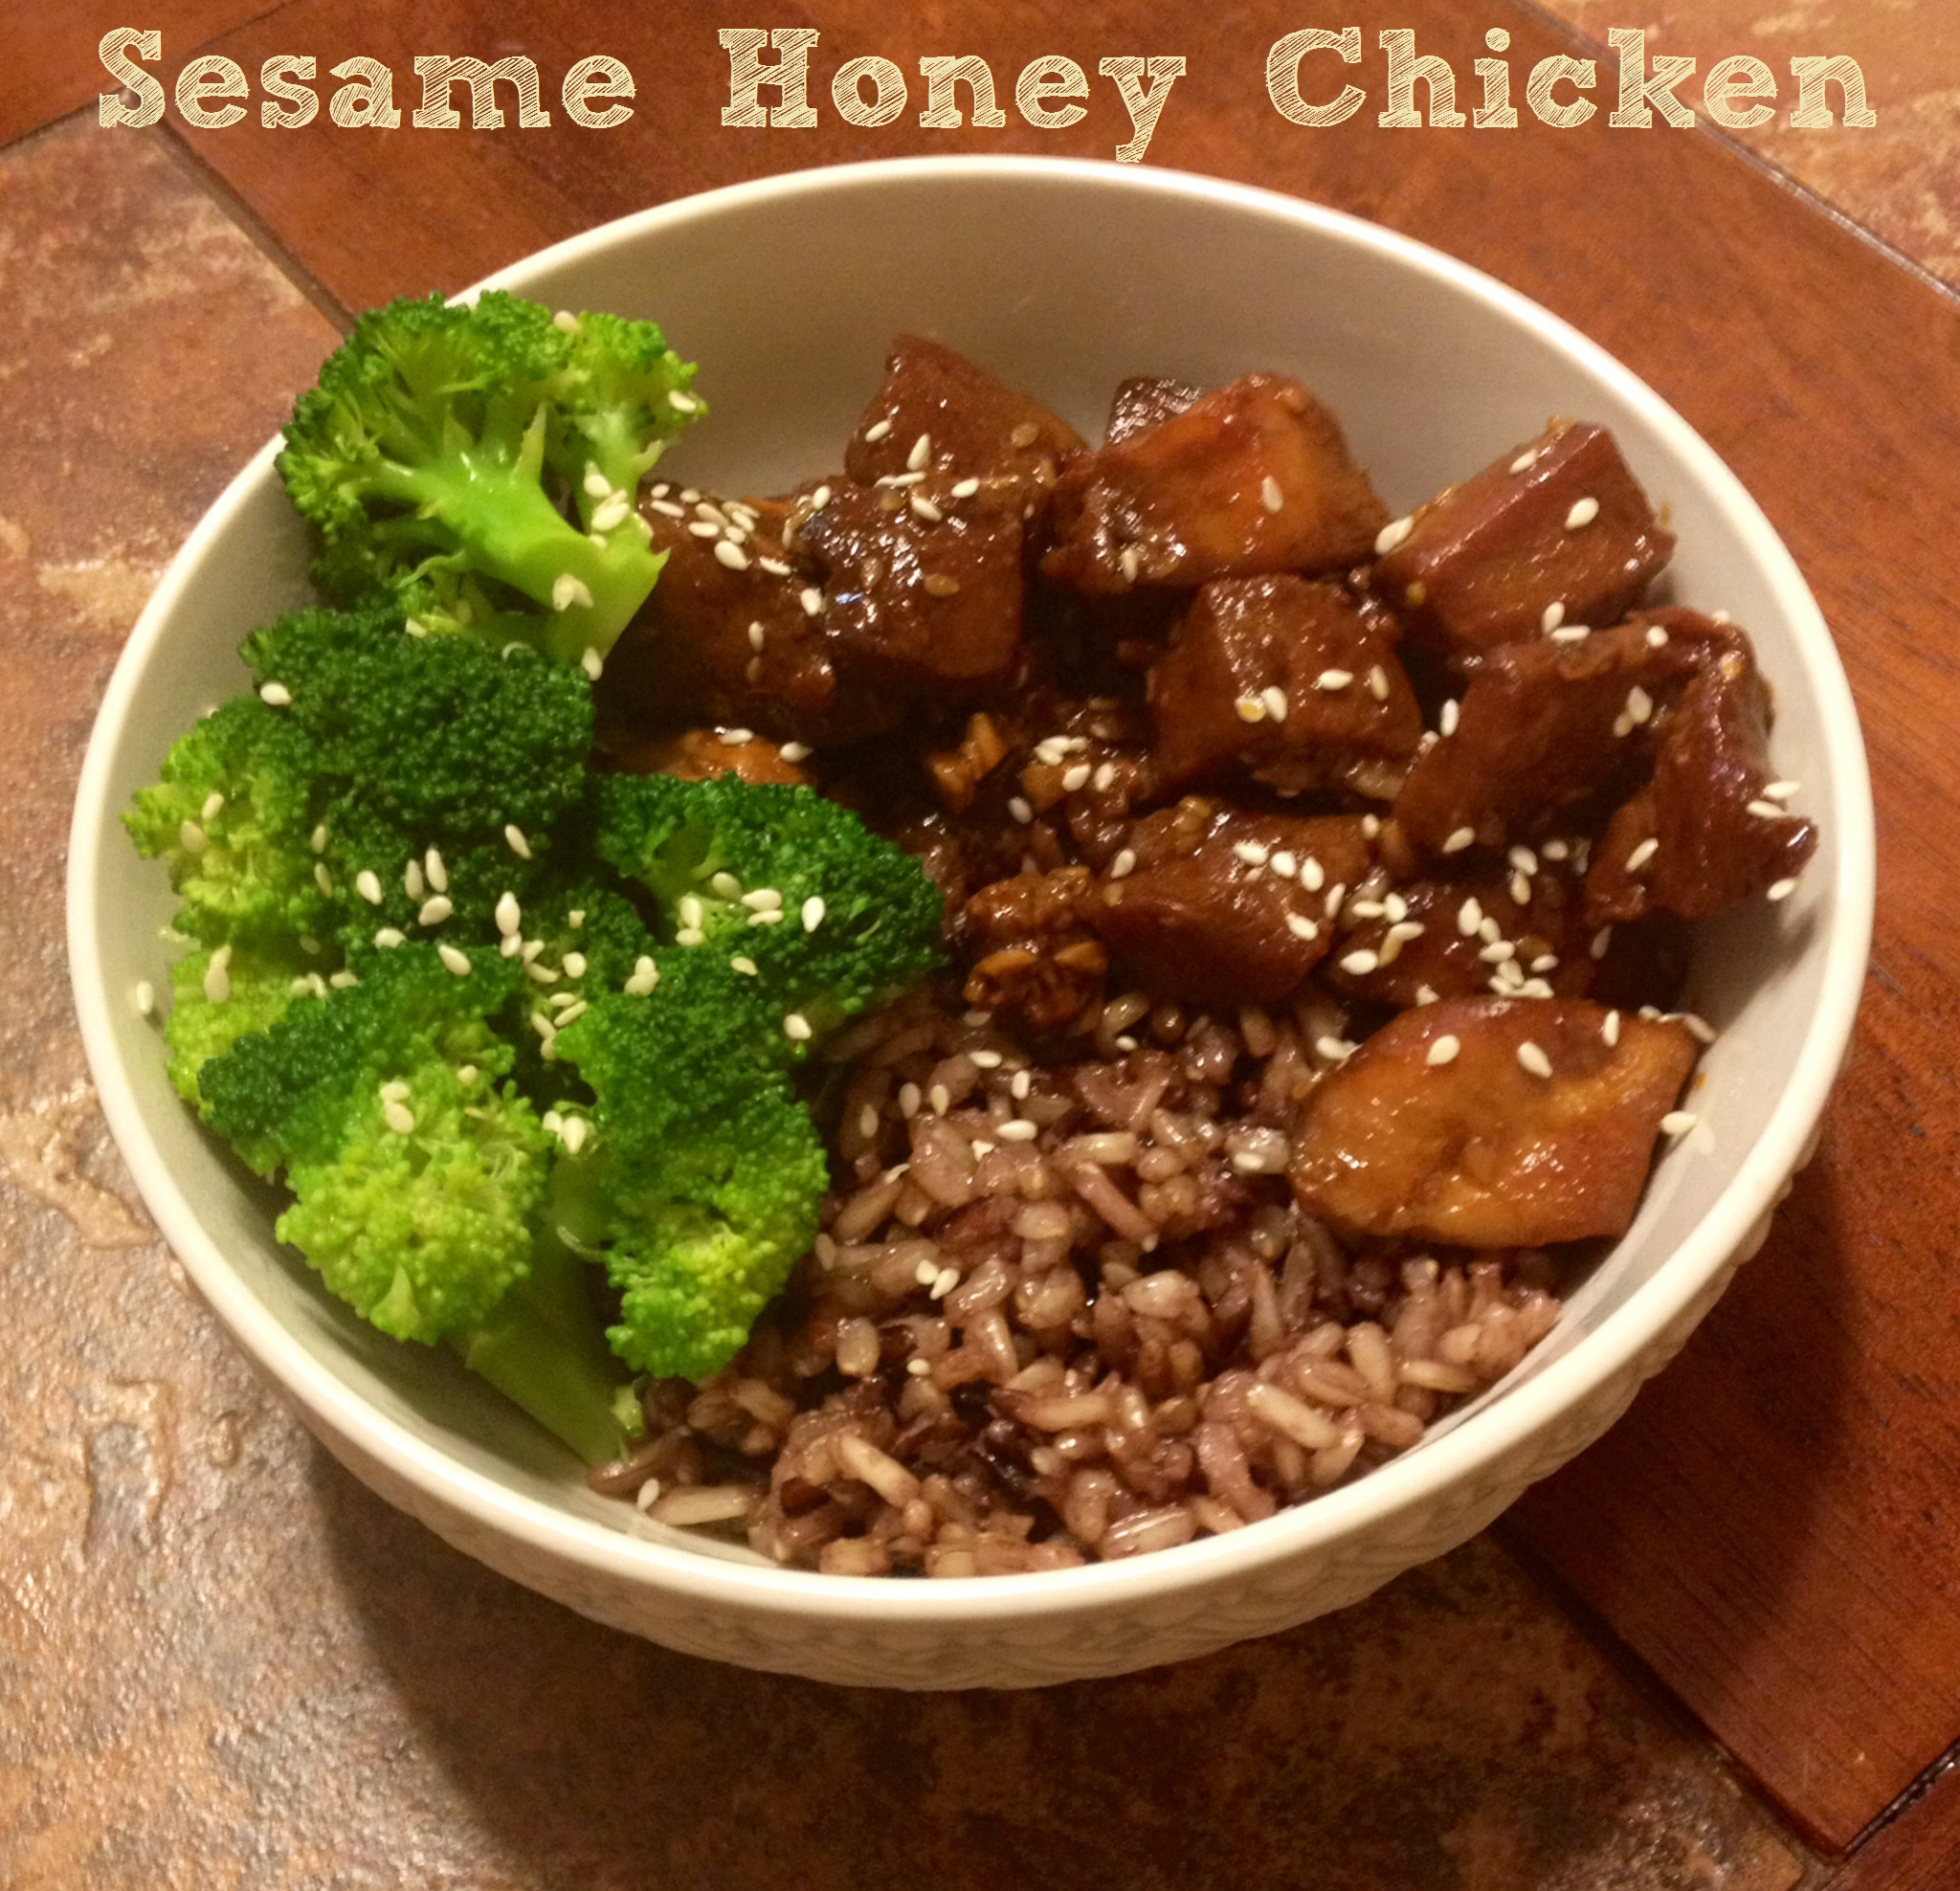 Sesame Honey Chicken Recipe – A Month of 365 Slow Cooker Suppers